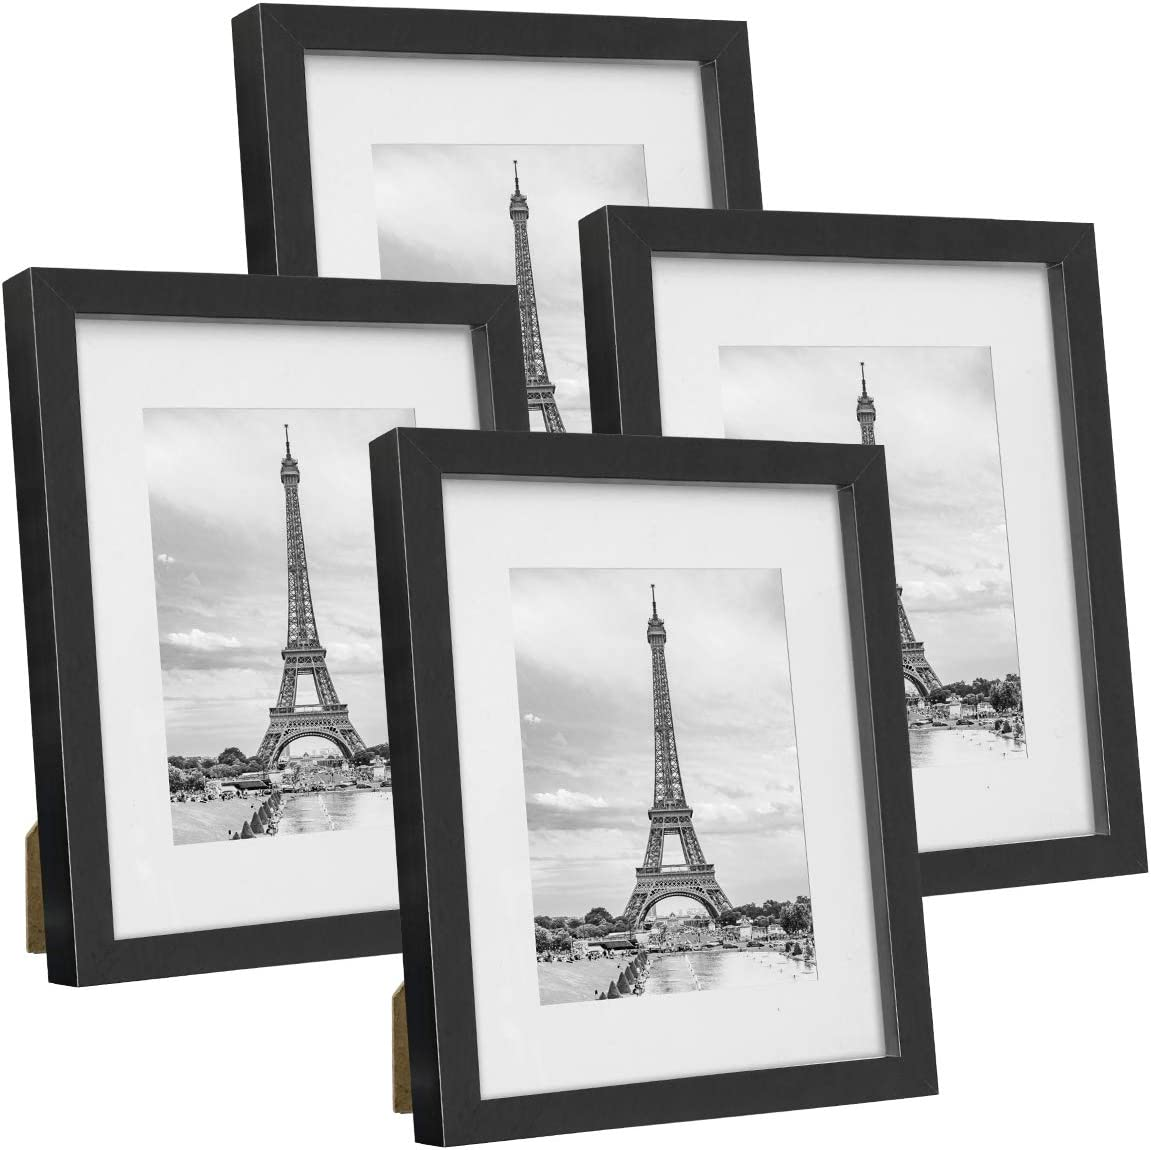 Q.Hou 8x10 Picture Frame Black Photo Frames Set of 4, Display Picture 5x7 with Mat or 8x10 Without Mat for Tabletop or Wall Mount (005US-QH-MD8X10-BK)